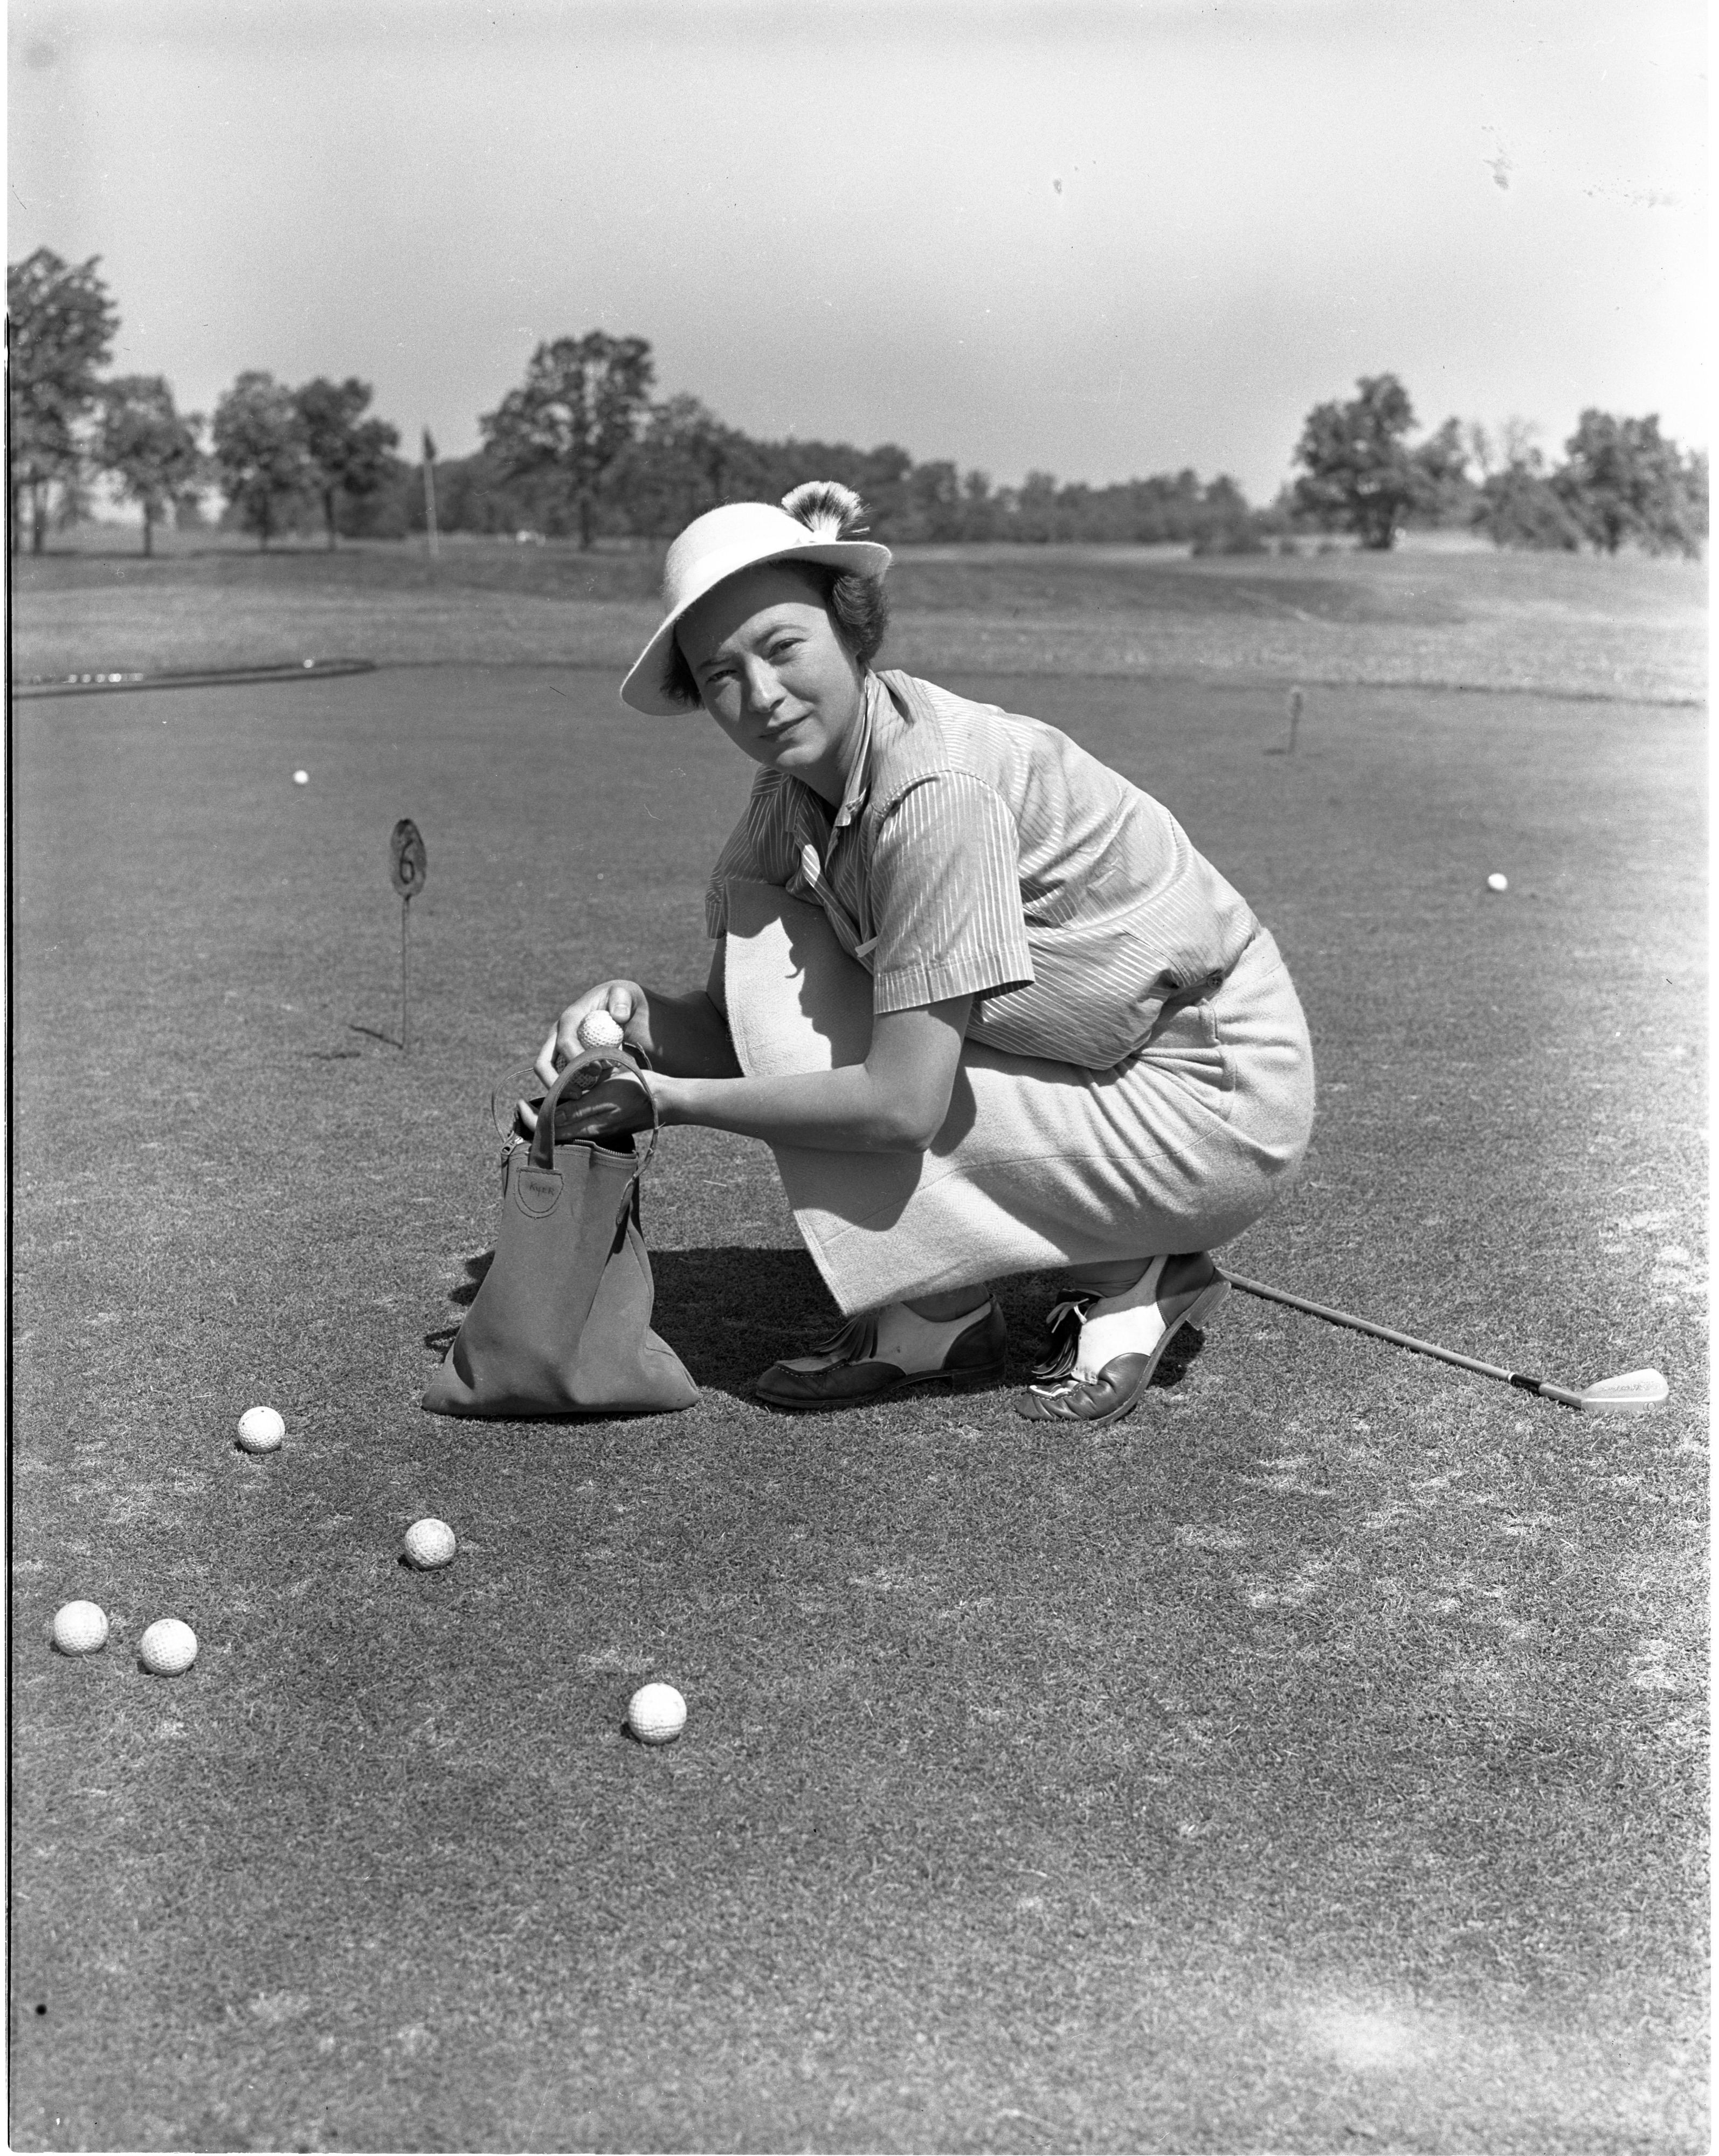 Jean Kyer Picks Up Practice Golf Balls At Barton Hills, May 1939 image